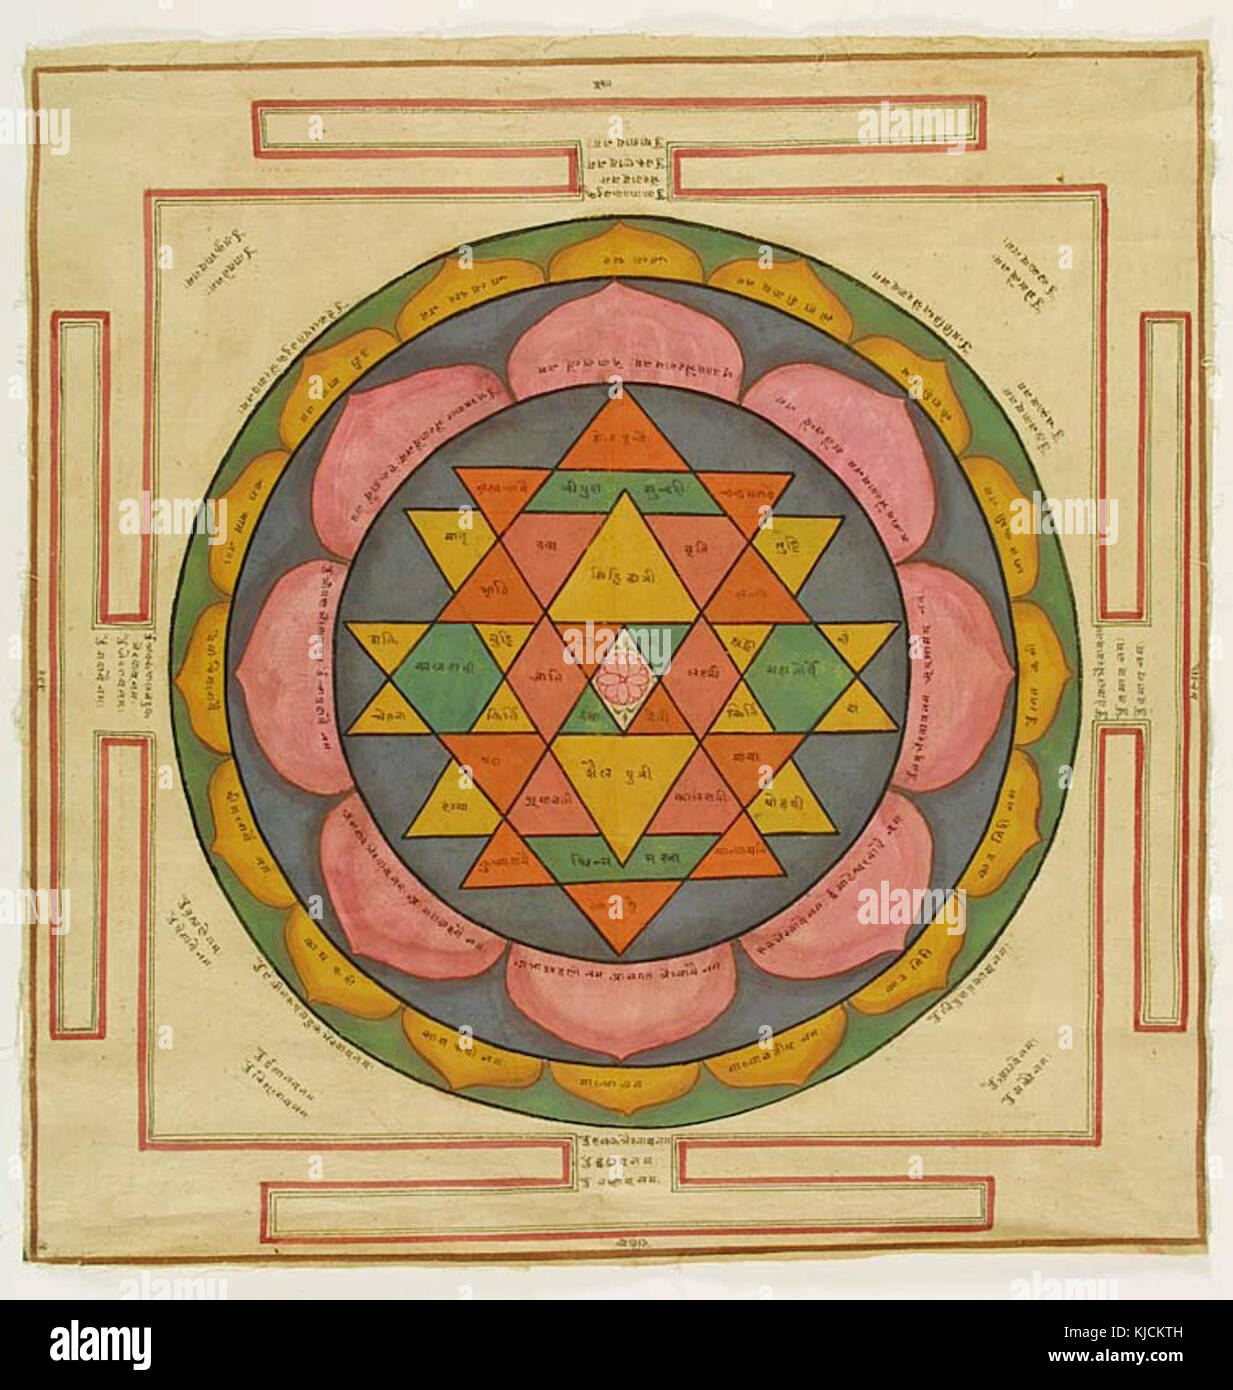 The classic Shri Yantra (1800s), with explanatory labels